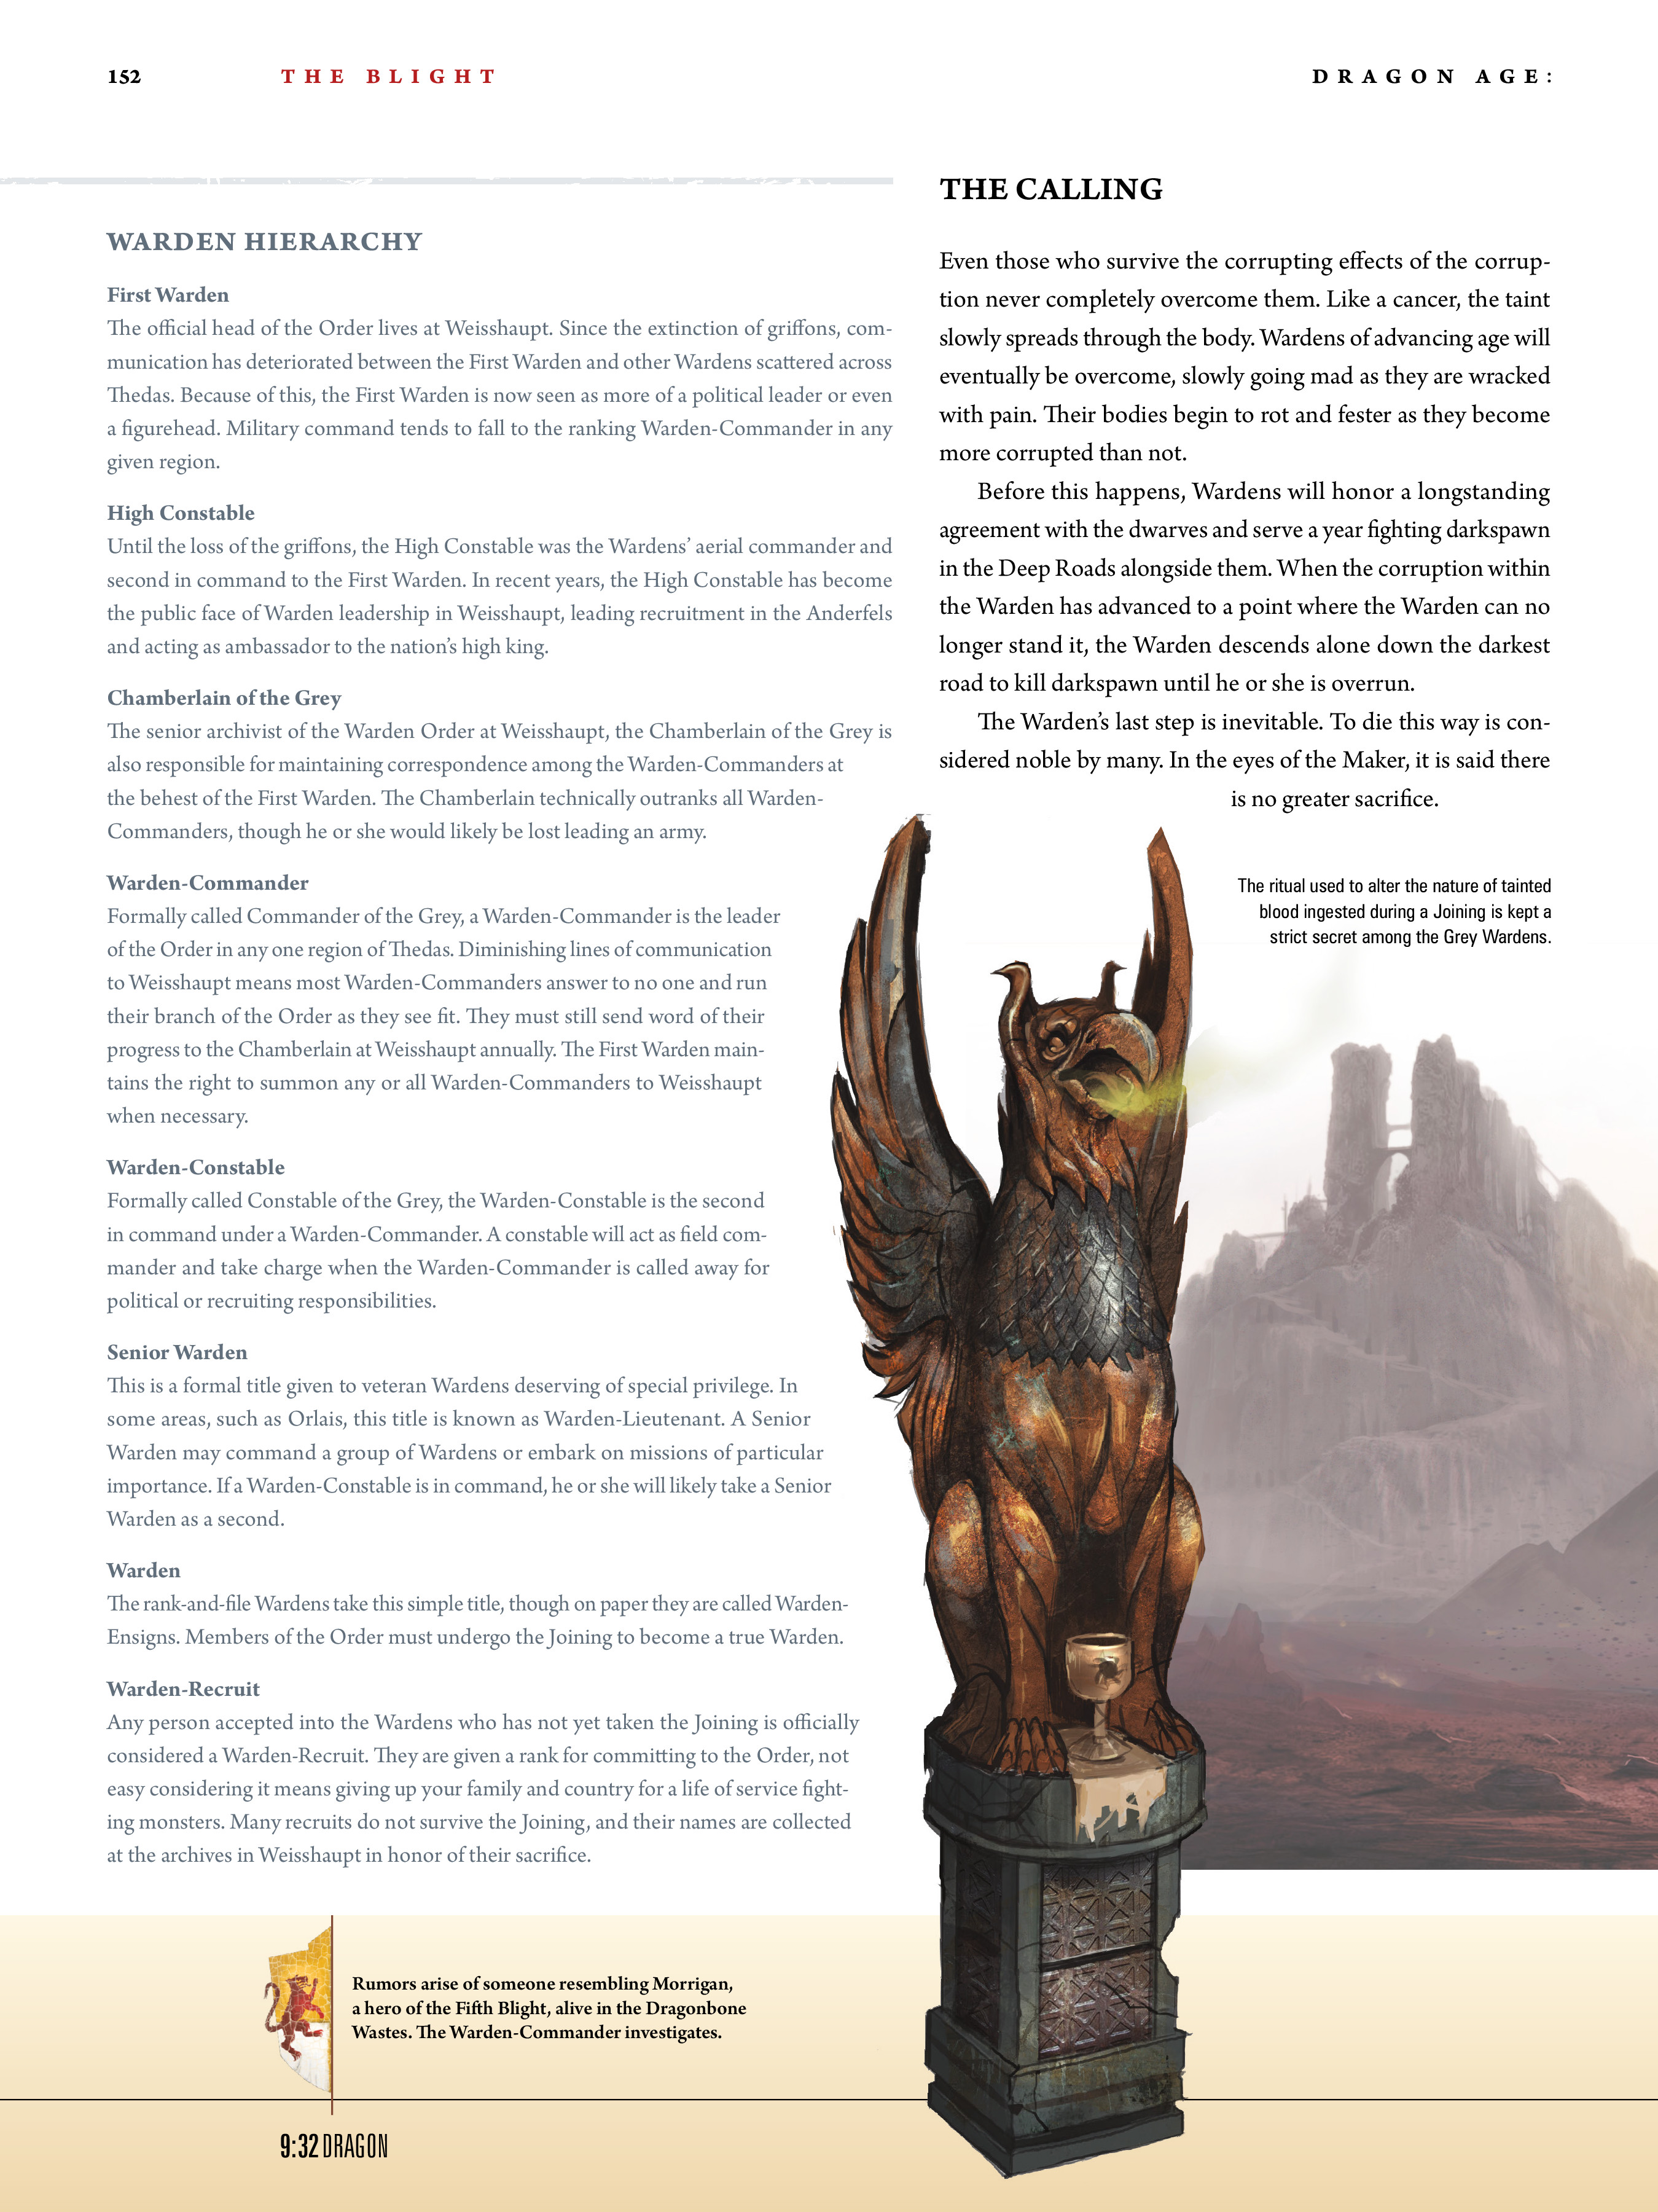 Read online Dragon Age: The World of Thedas comic -  Issue # TPB 1 - 125